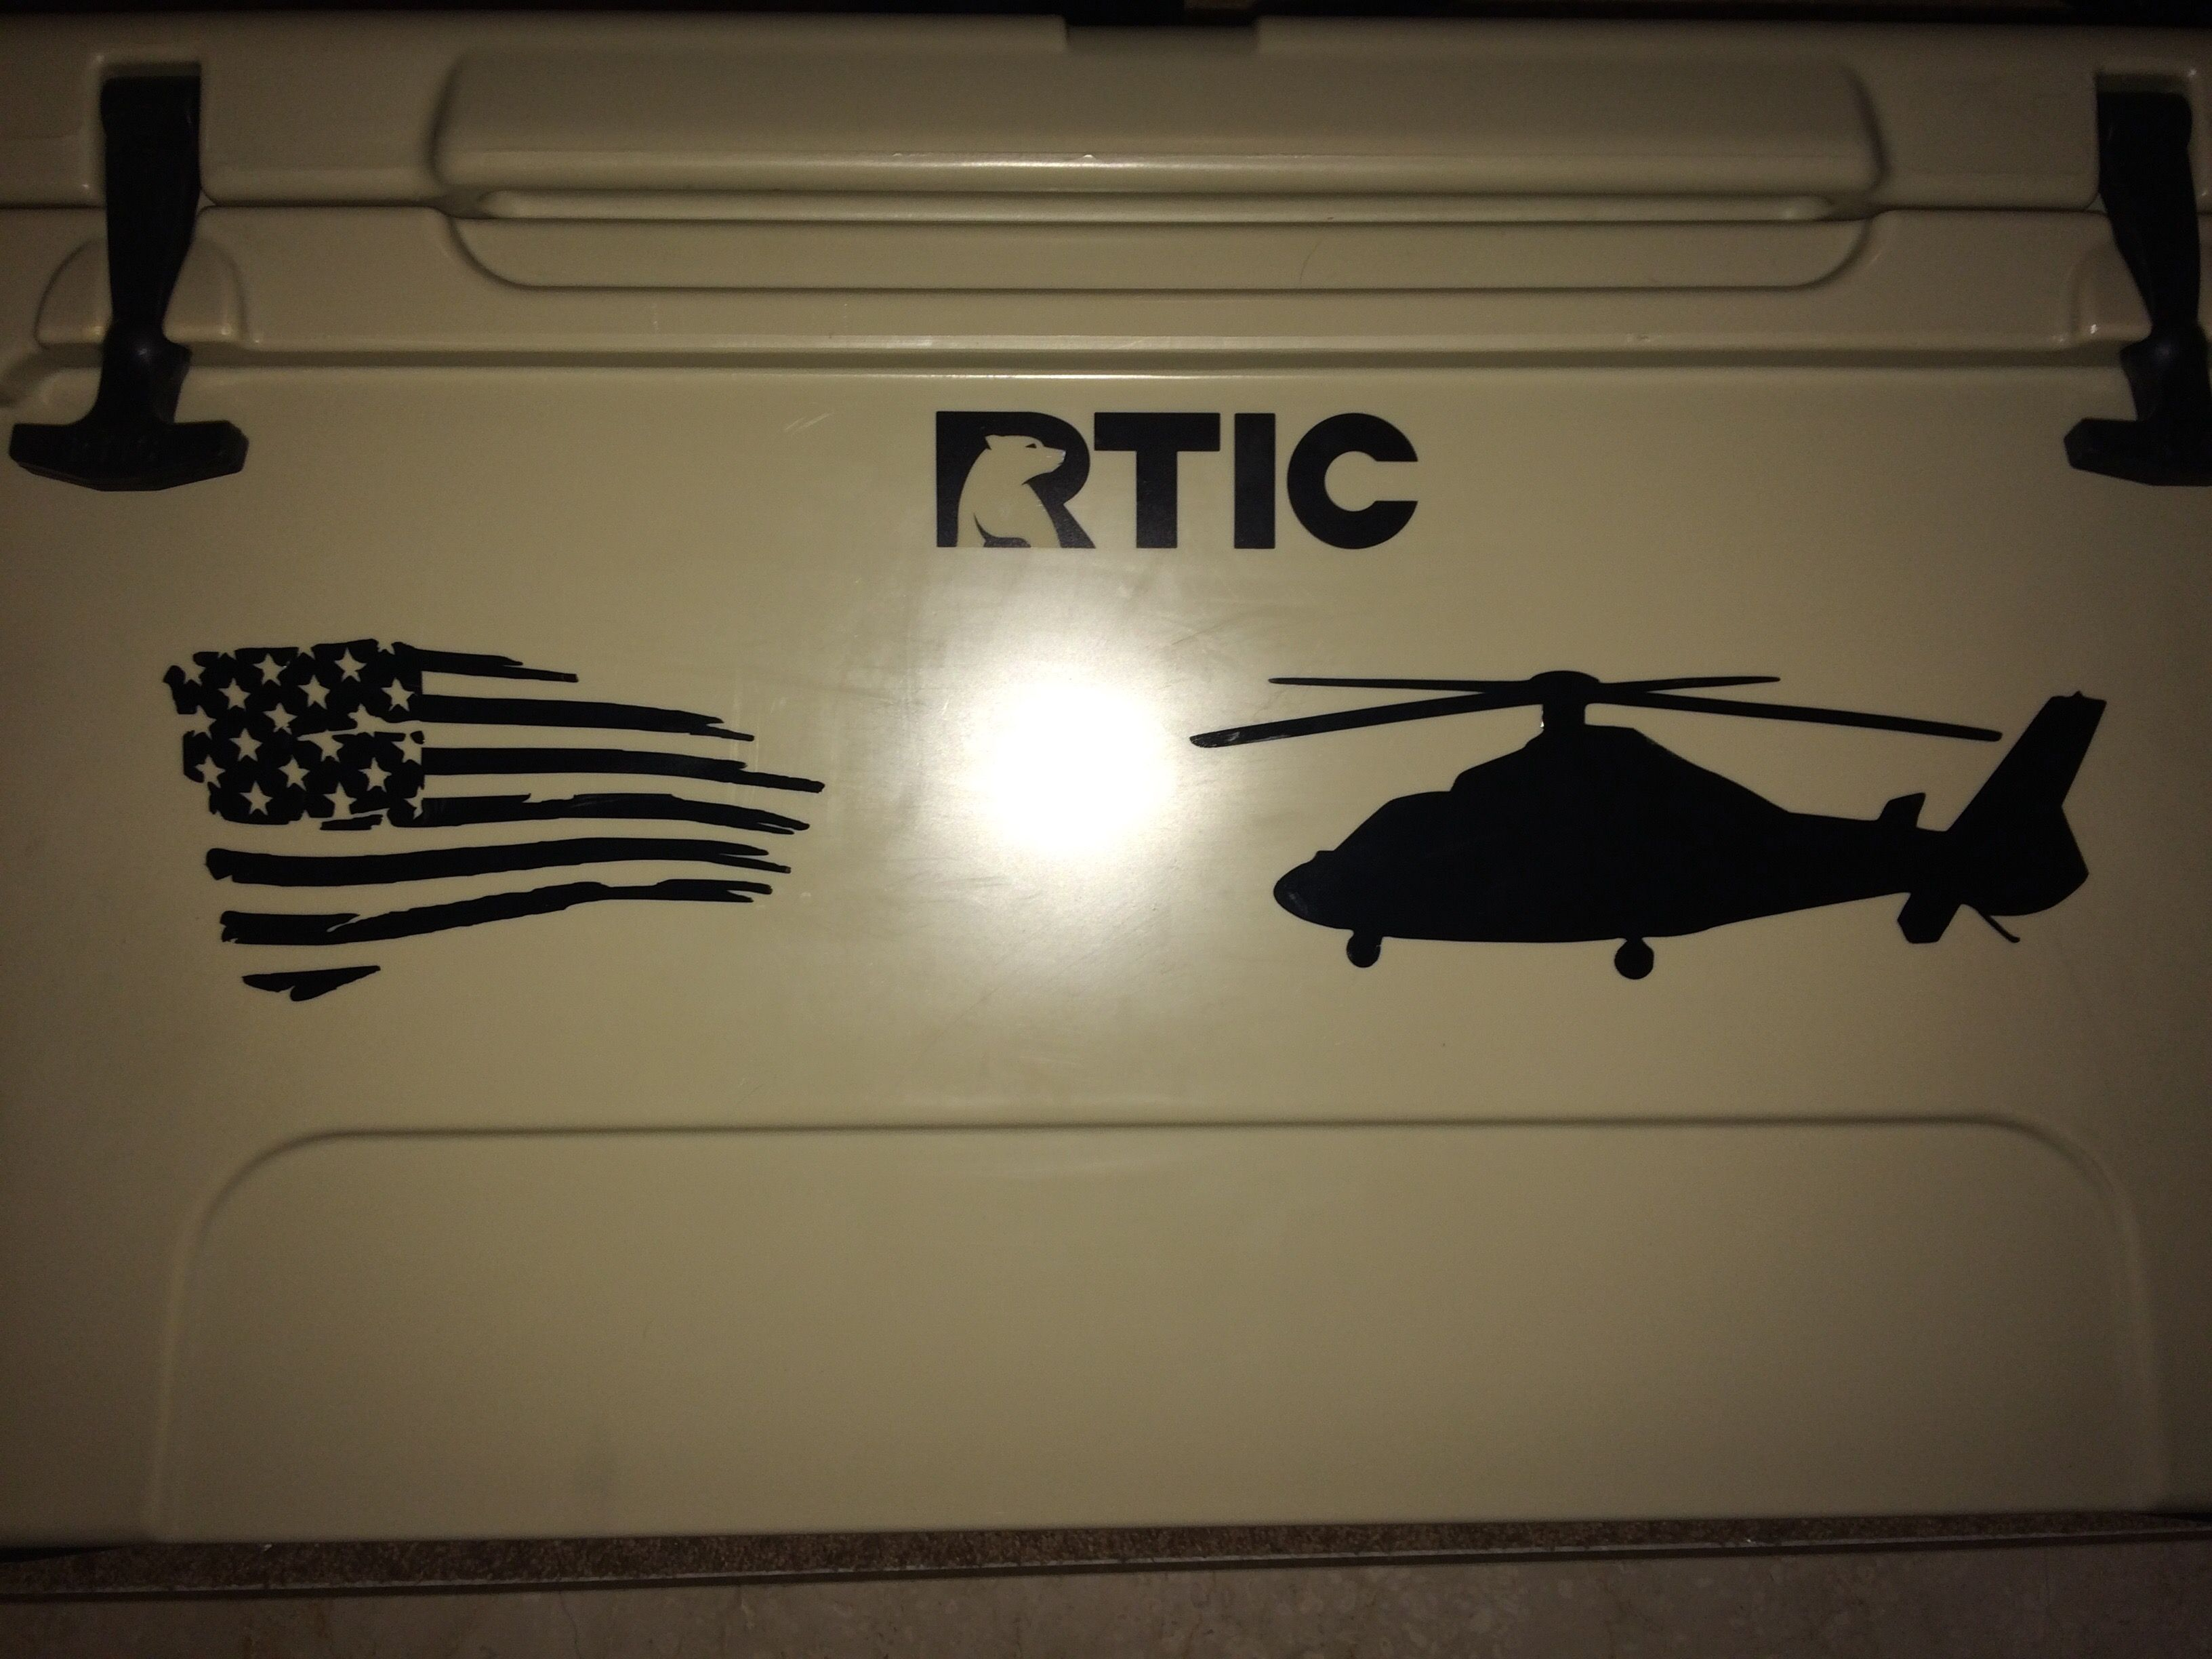 American Flag And Helicopter Vinyl Decals Made With Cricut Explore - How to make vinyl decals with cricut explore air